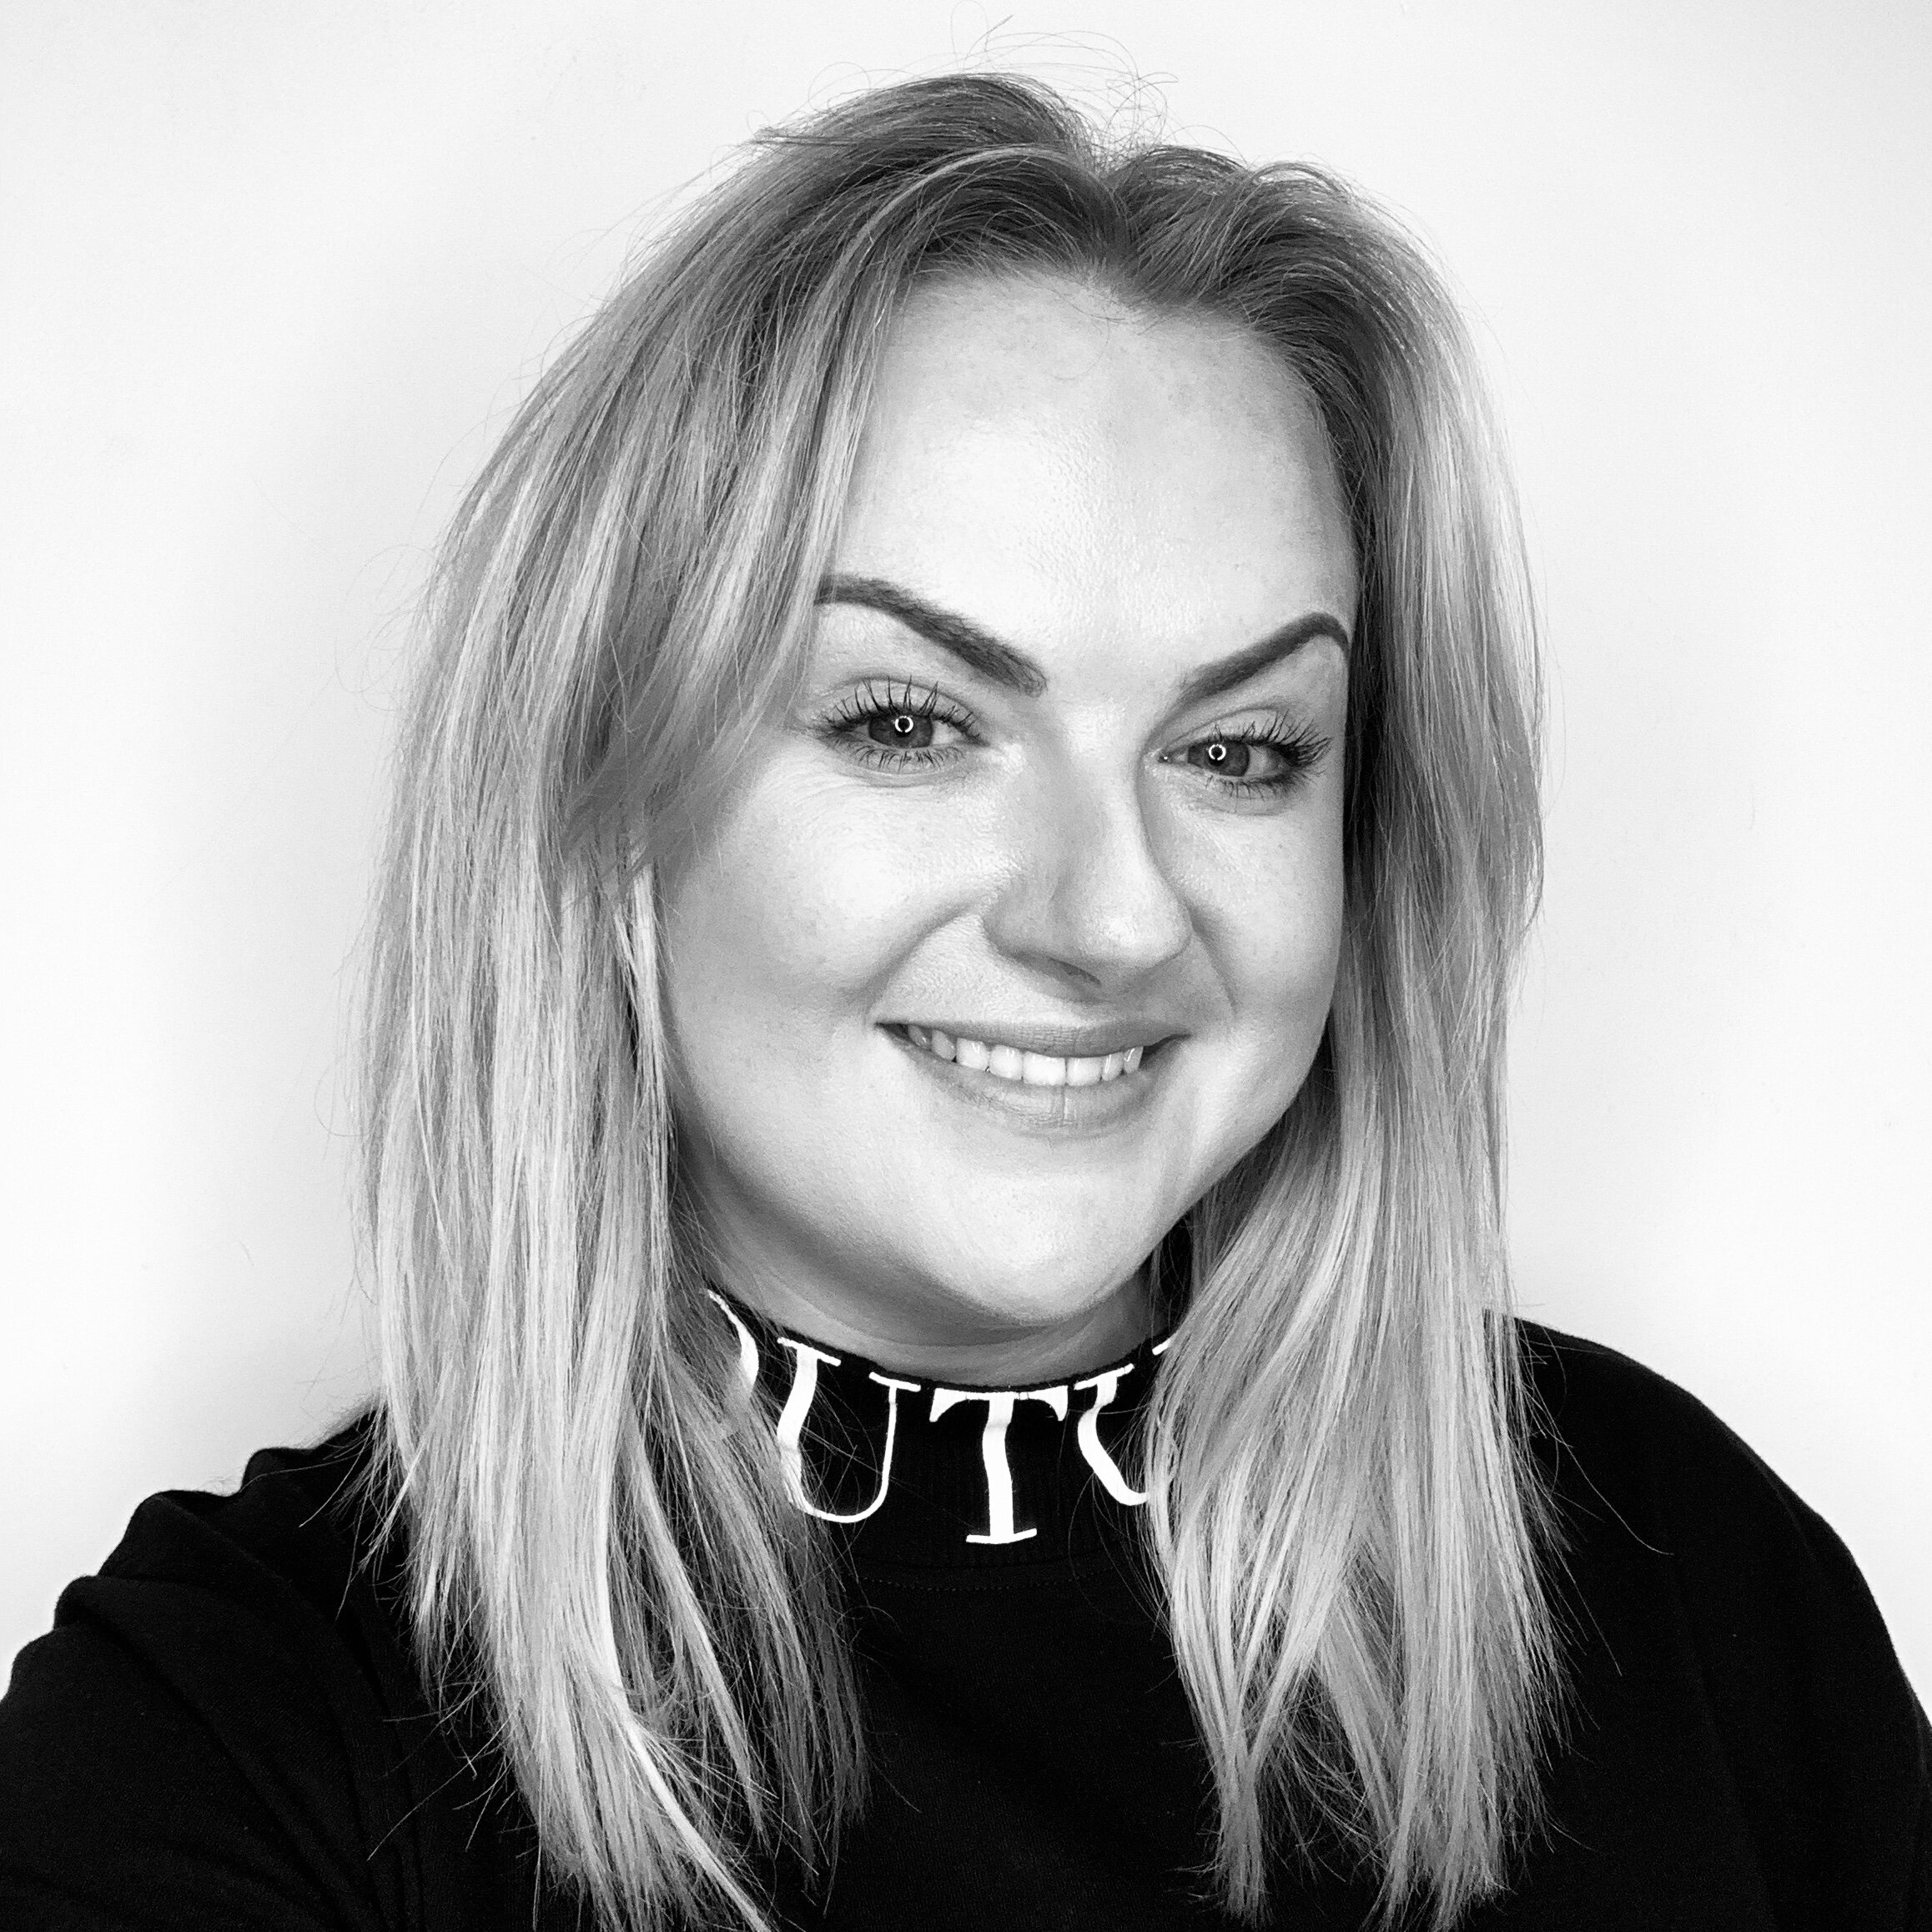 Salon Director - Ashley is the gal behind Ashley Clarke Signature Salon. She followed her dreams to create a salon that made sure every member of the team matters. To inspire them, nurture them be REAL with them. The happy team are the key to the Salons success and you will sure enough see it!